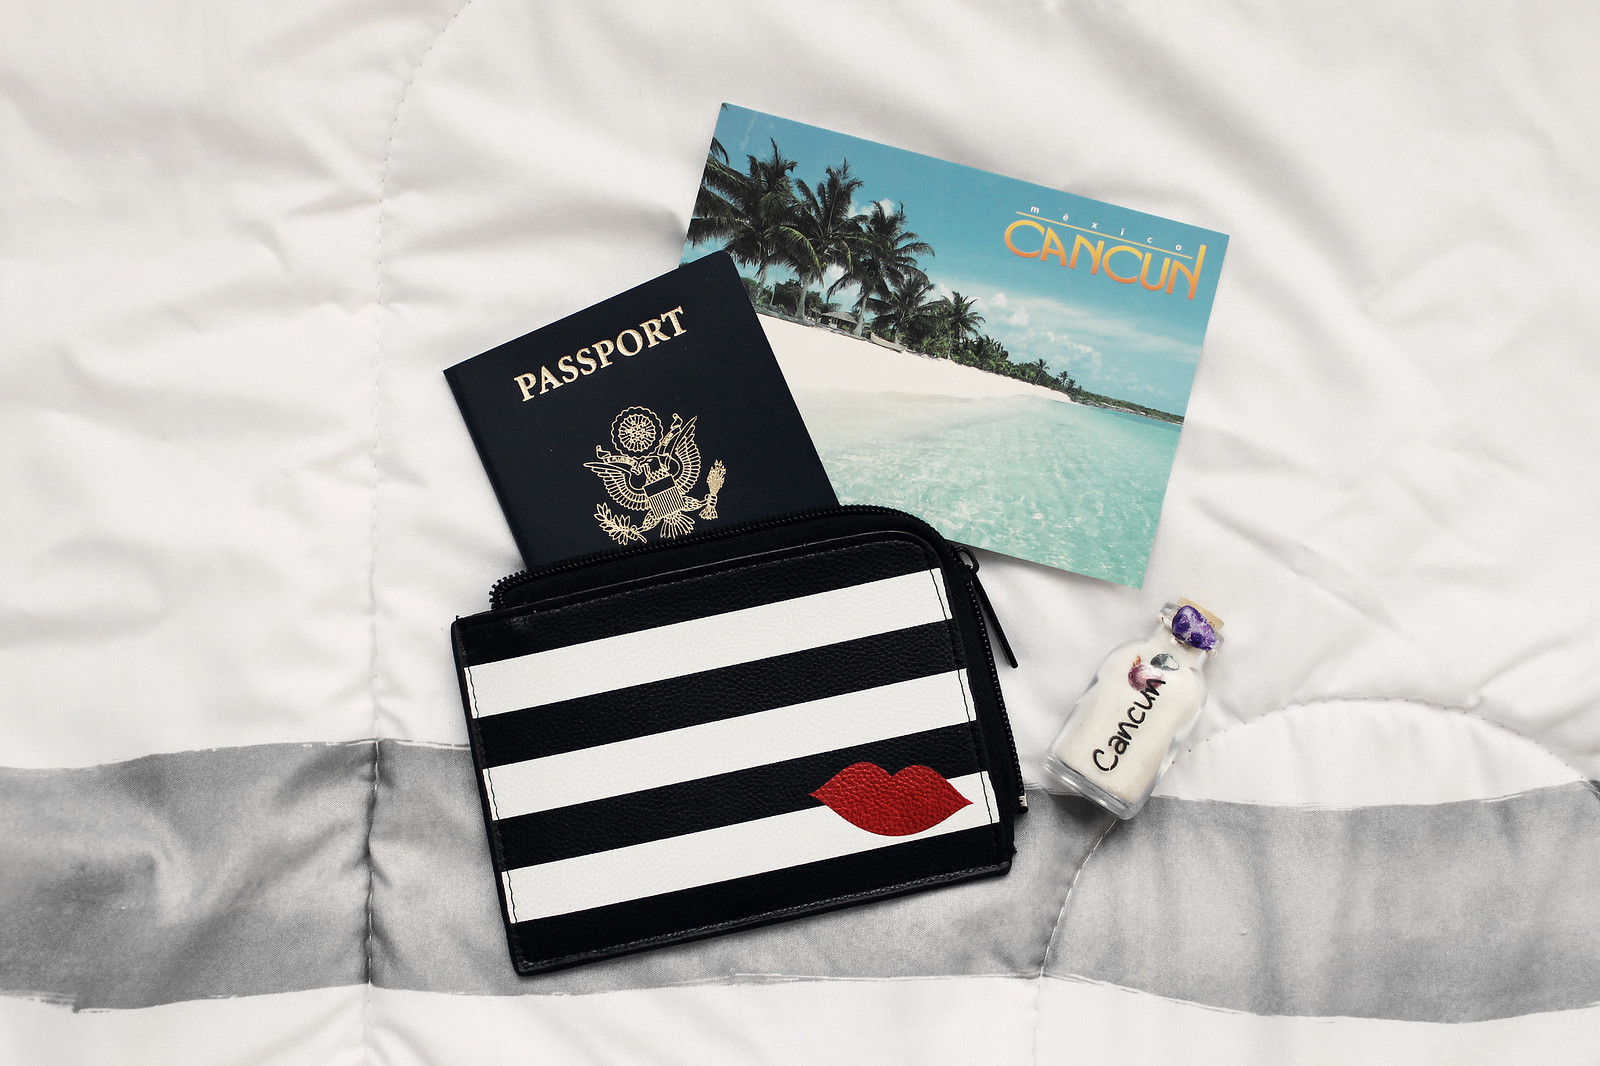 3266-sephora-passport-holder-travel-cancun-lifestyle-elizabeeetht-clothestoyouuu